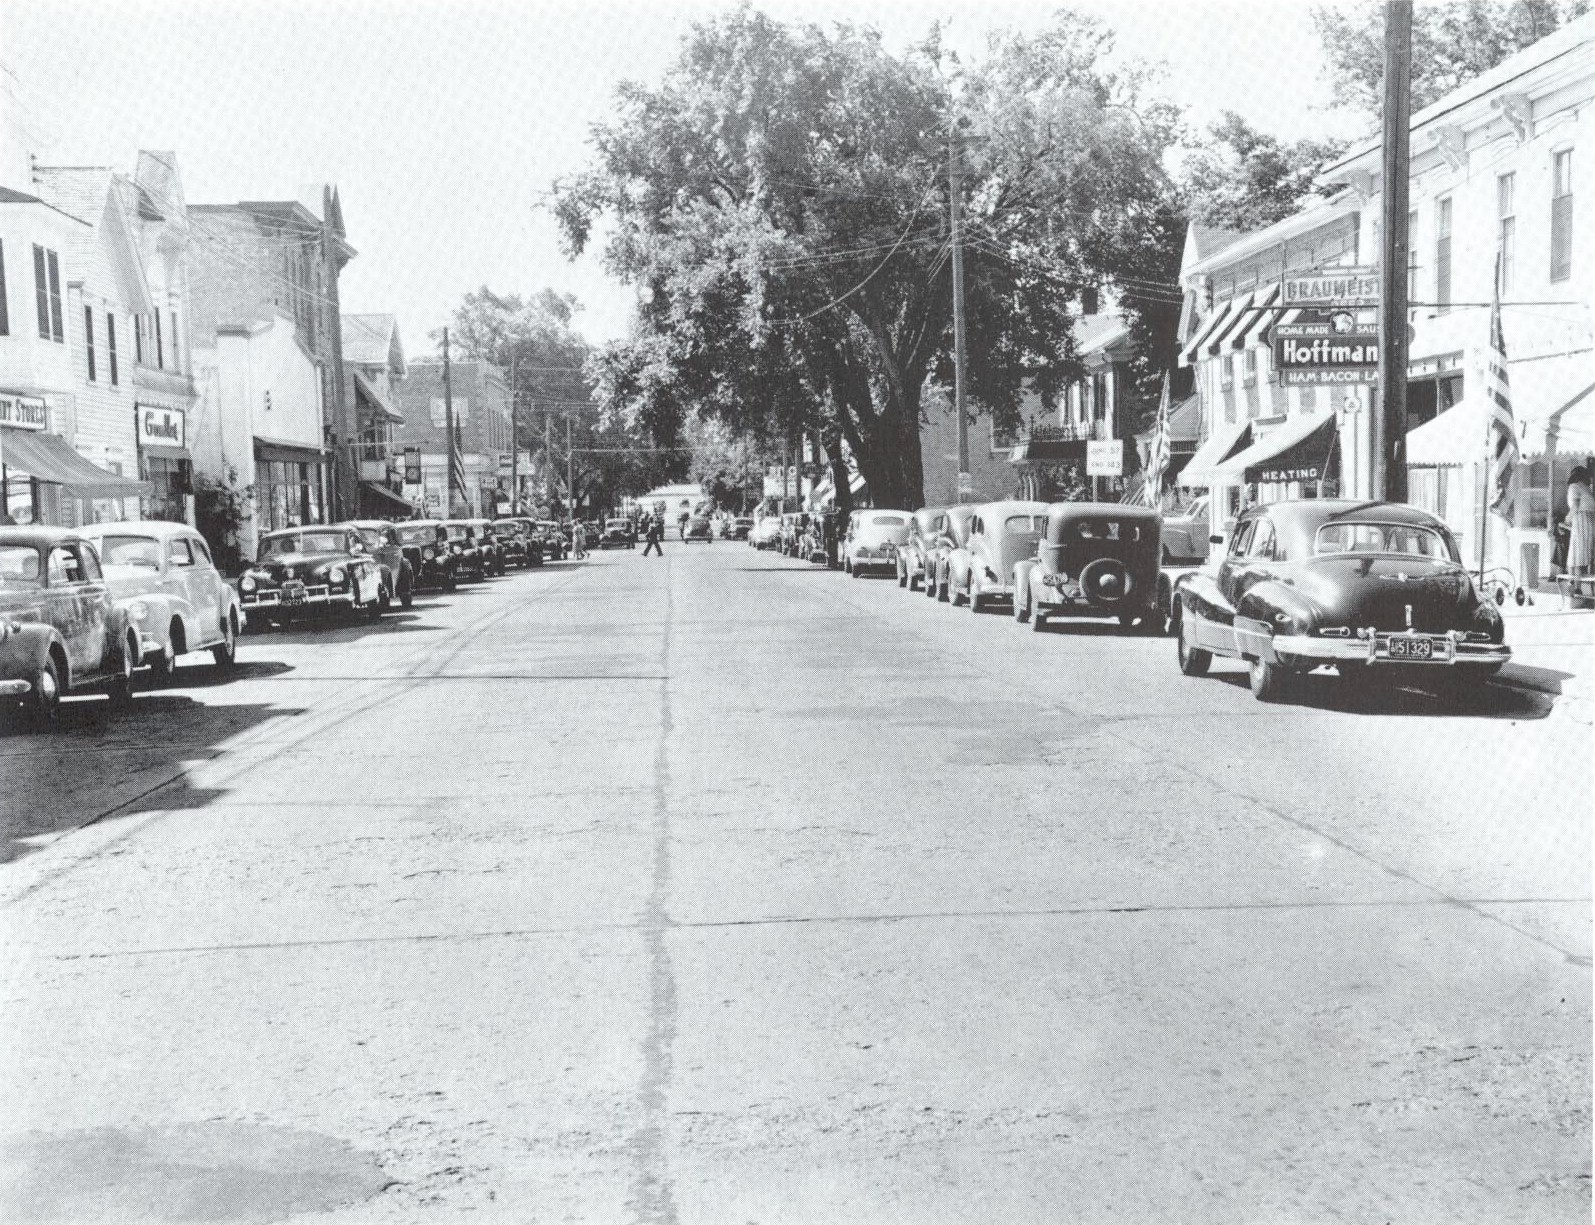 Looking north on Washington Avenue in the 1940s.